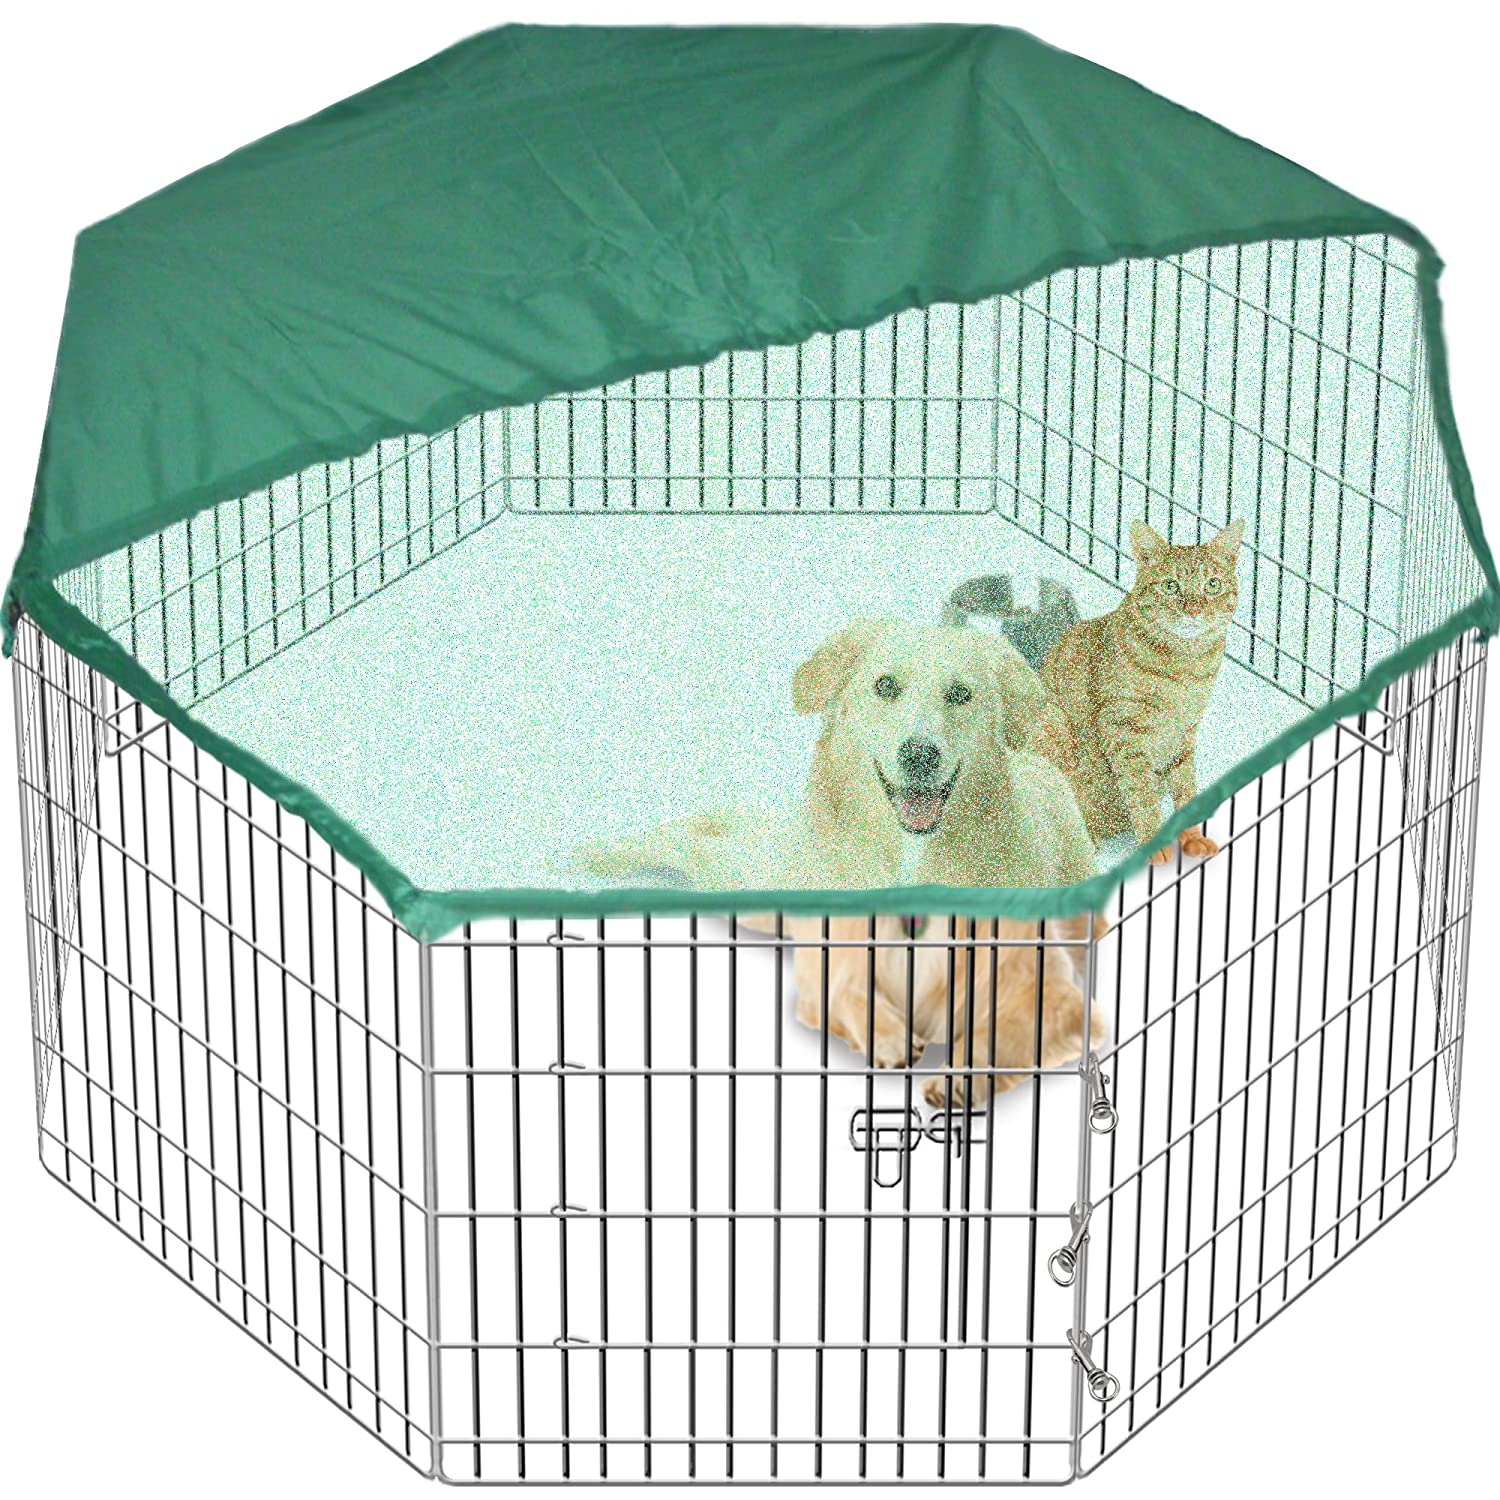 pet playpen dog puppy cage folding run fence garden crate 91cm high 8 sided tall u0026 free cover amazoncouk pet supplies